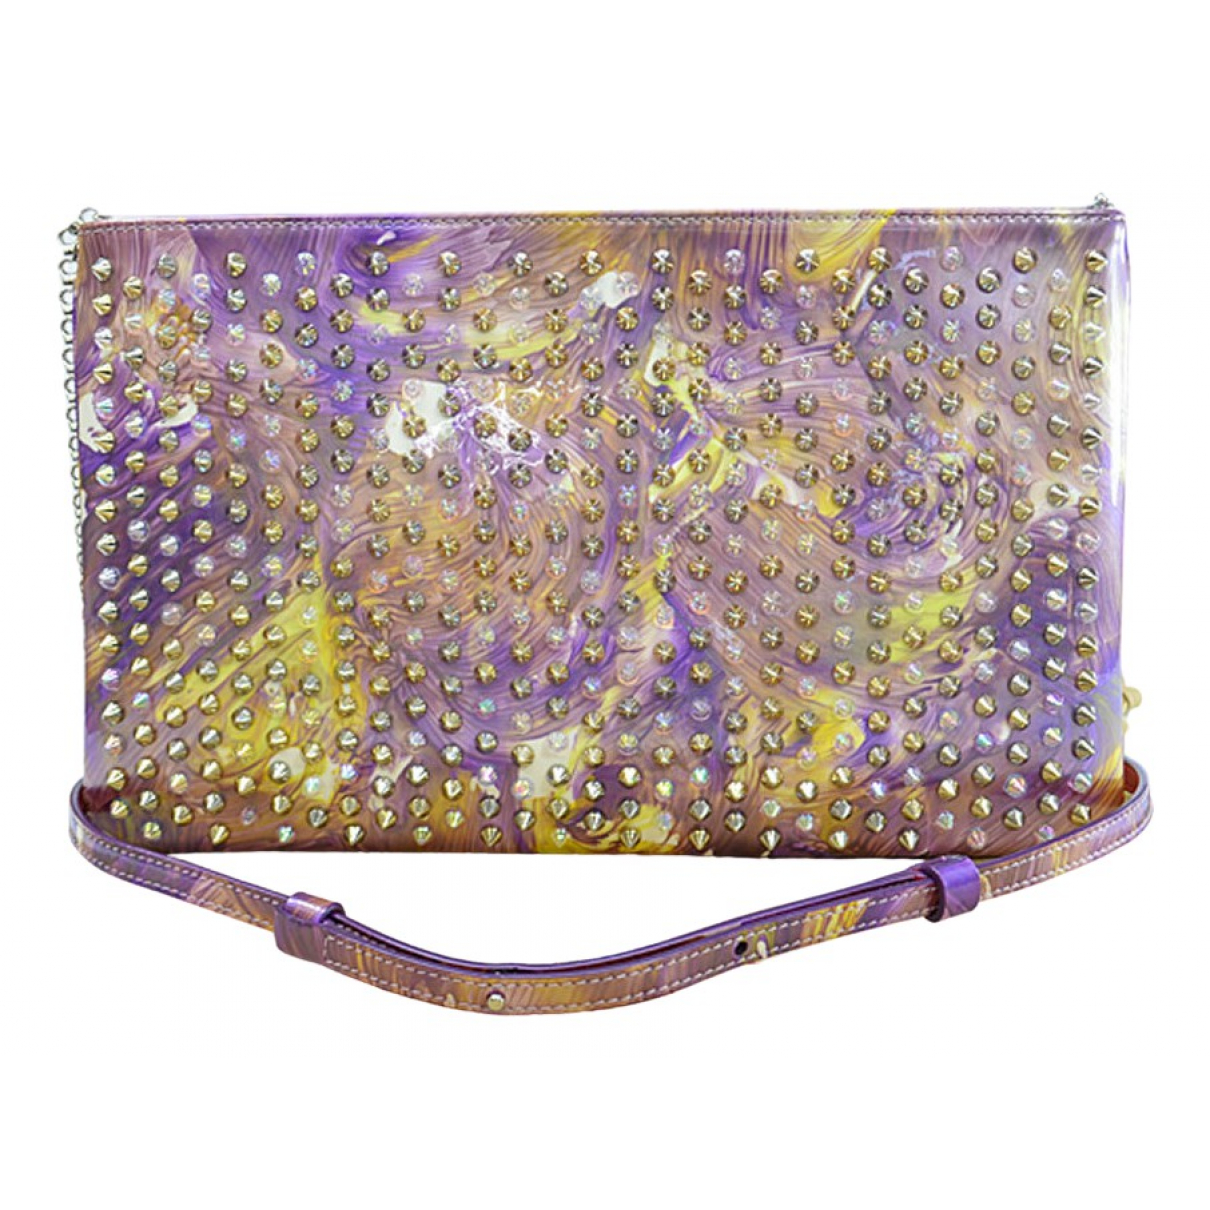 Christian Louboutin Panettone Purple handbag for Women \N